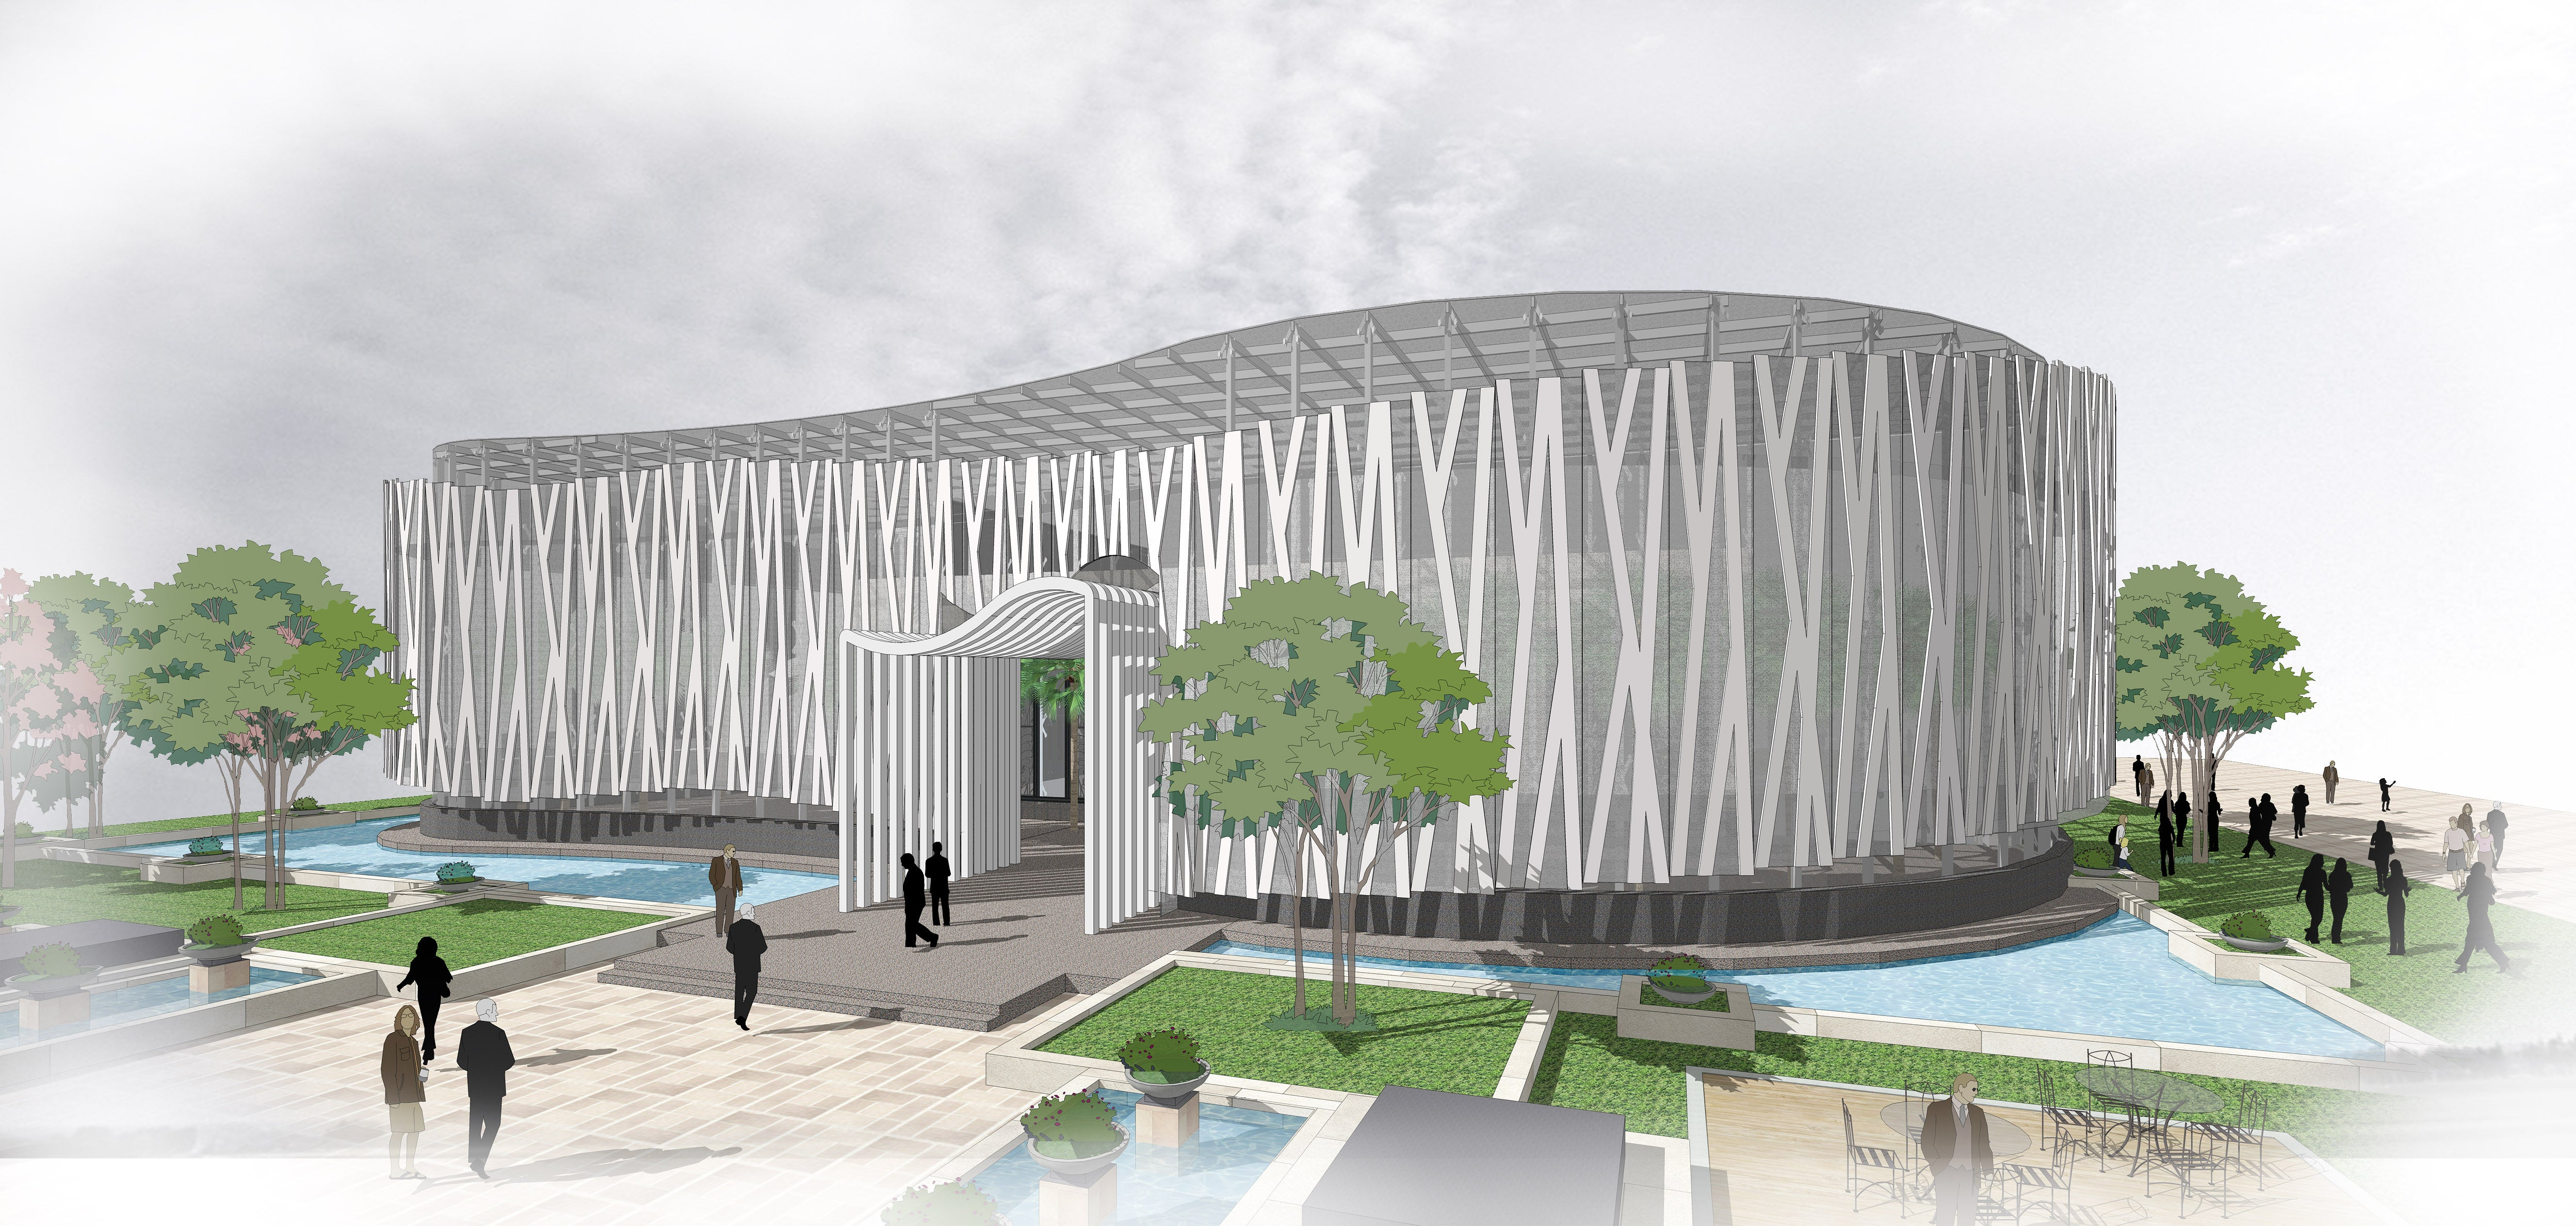 💎【Sketchup Architecture 3D Projects】Curve Polygon Gallery ,Art Museum Sketchup 3D Models